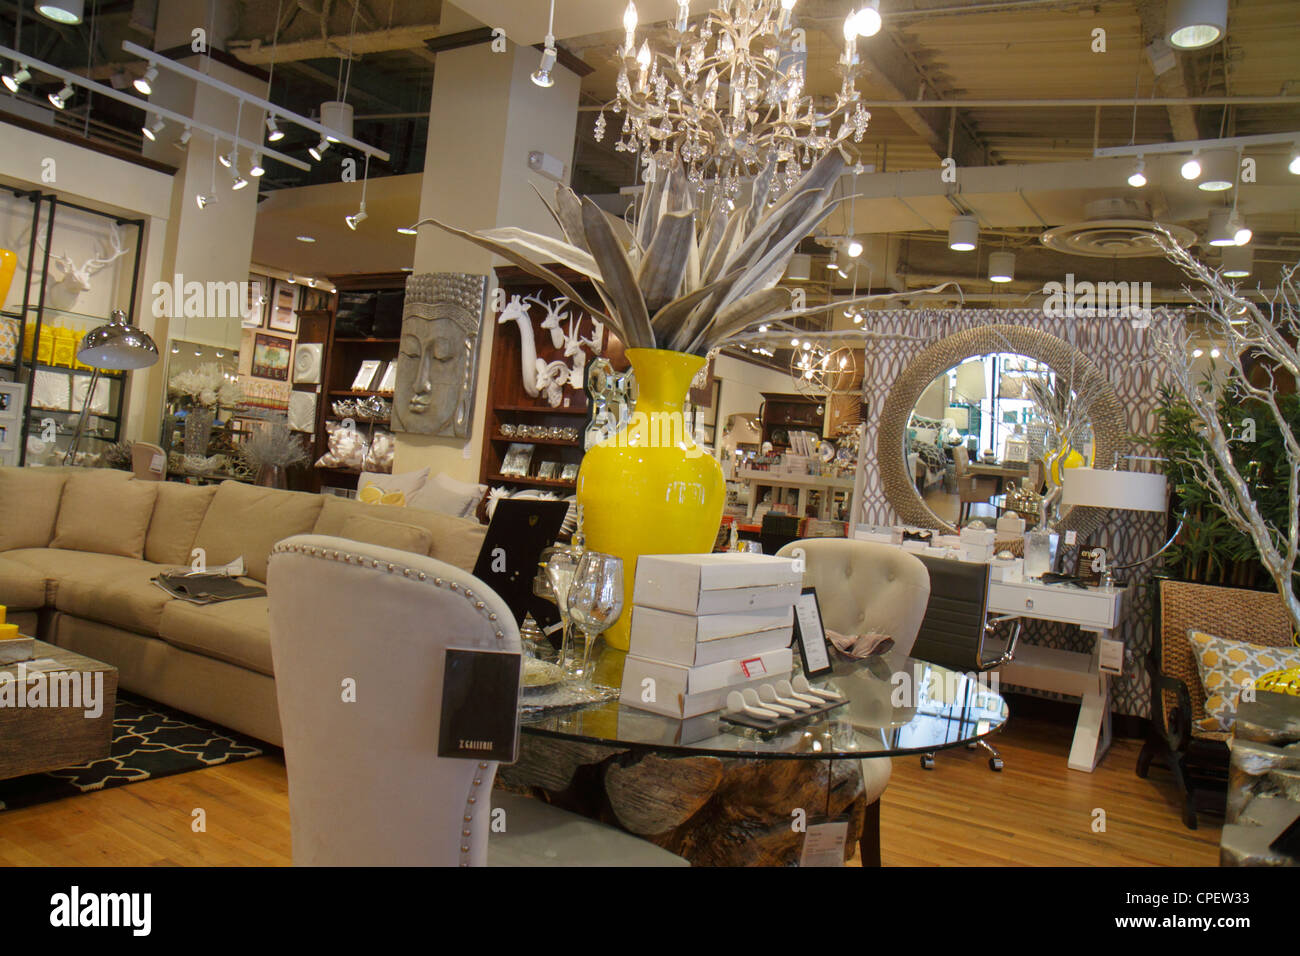 Florida Home Decor Boca Raton Florida Mizner Park Plaza Real Upscale Business